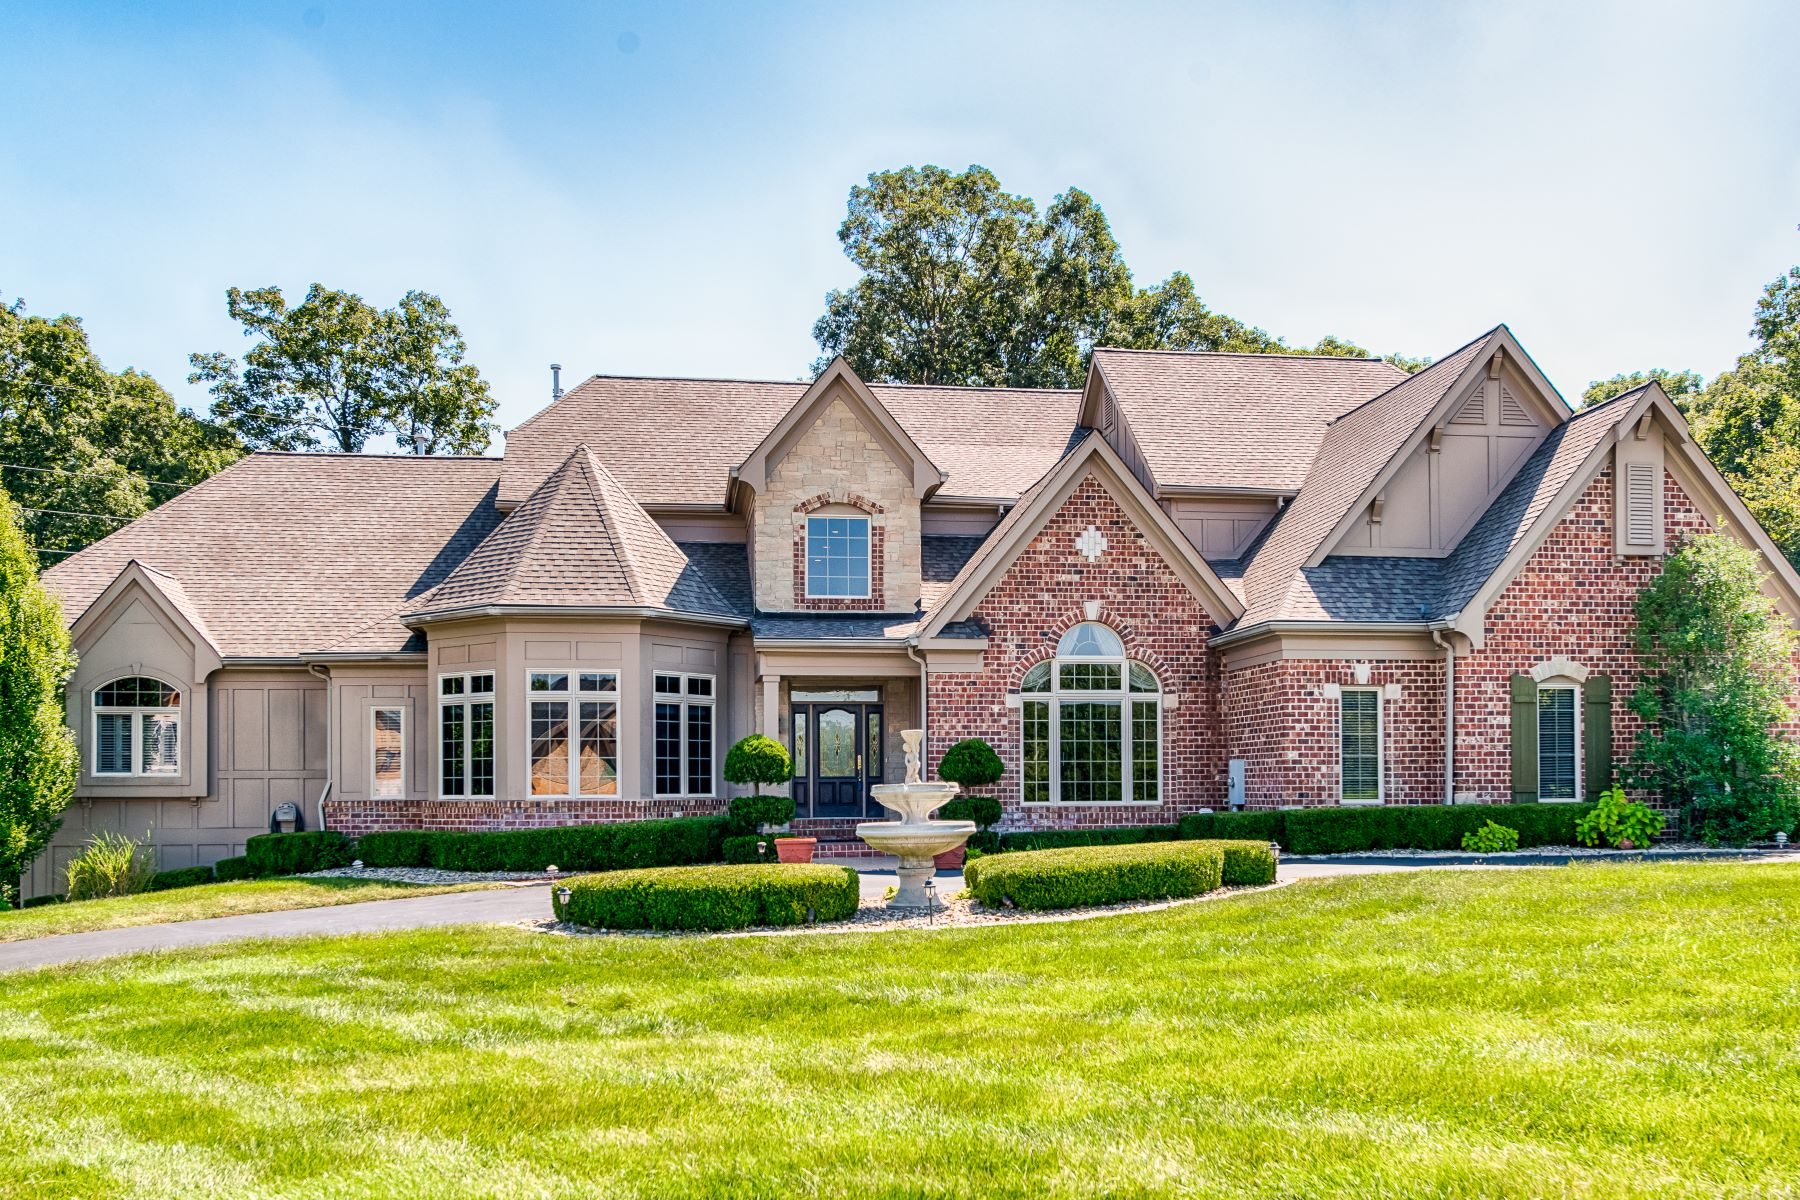 Single Family Homes for Sale at Luxurious Estate in private Wildwood neighborhood 18518 Great Meadow Road Wildwood, Missouri 63038 United States